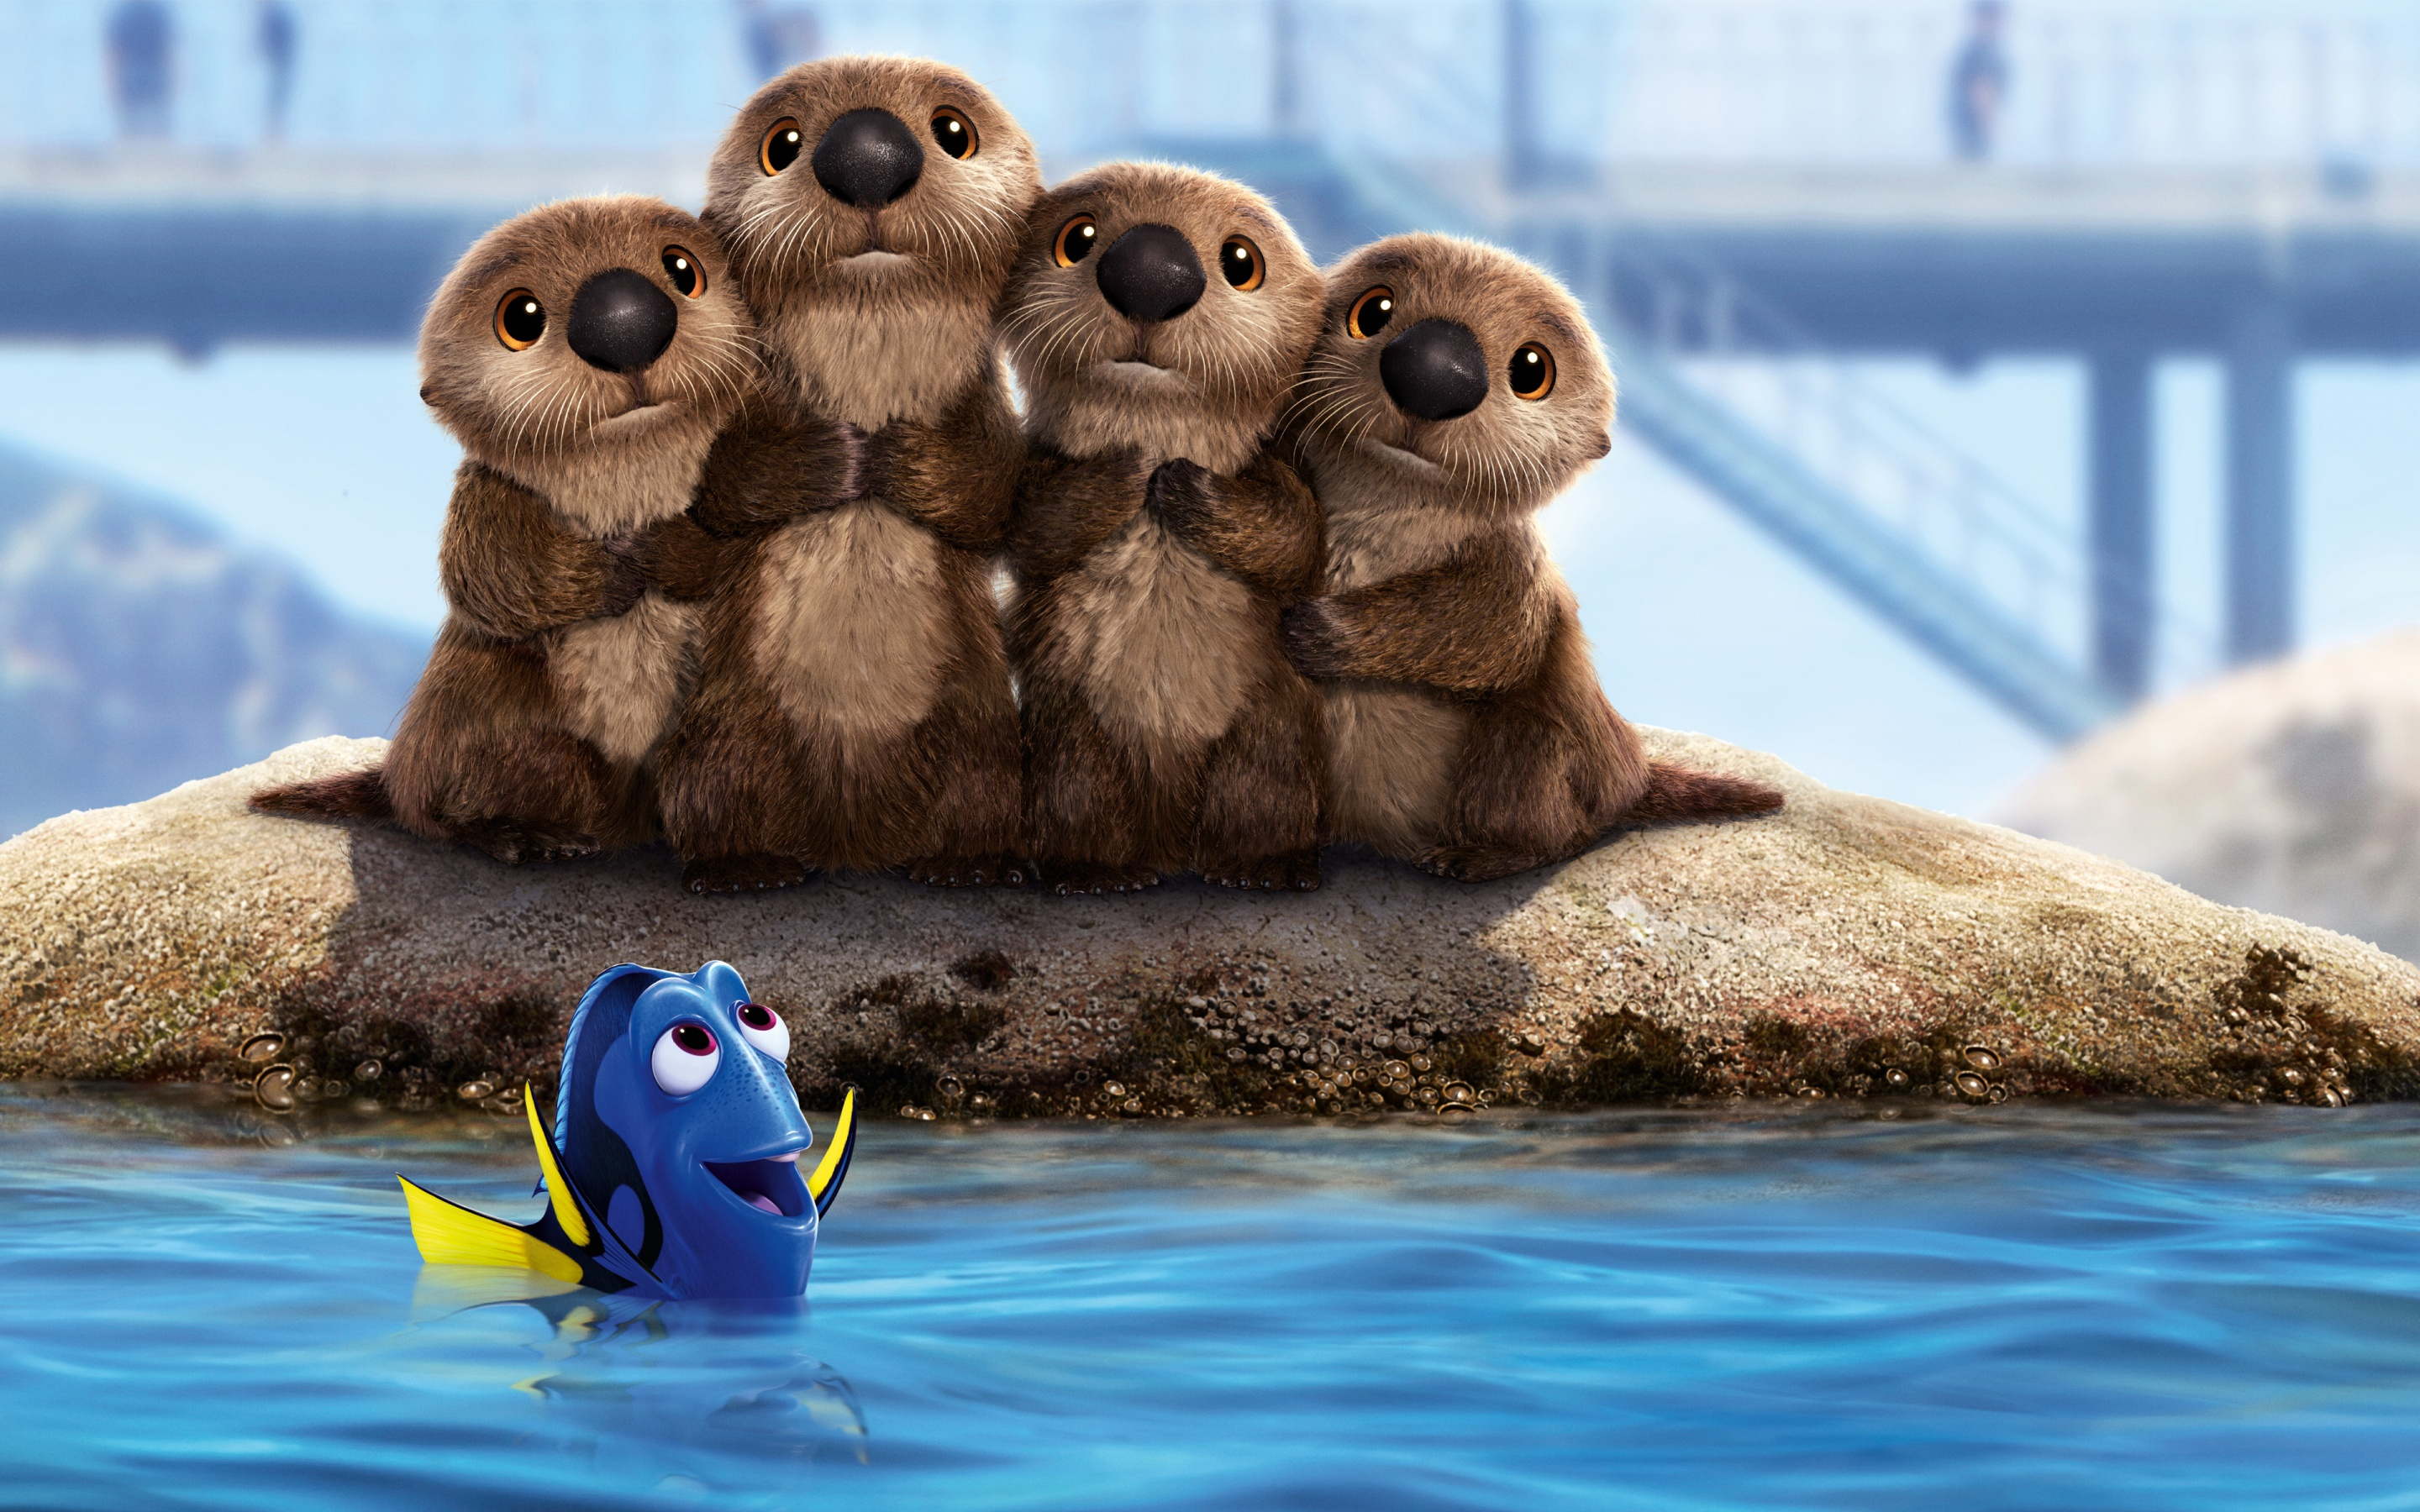 Sea Lions Finding Dory Wallpapers